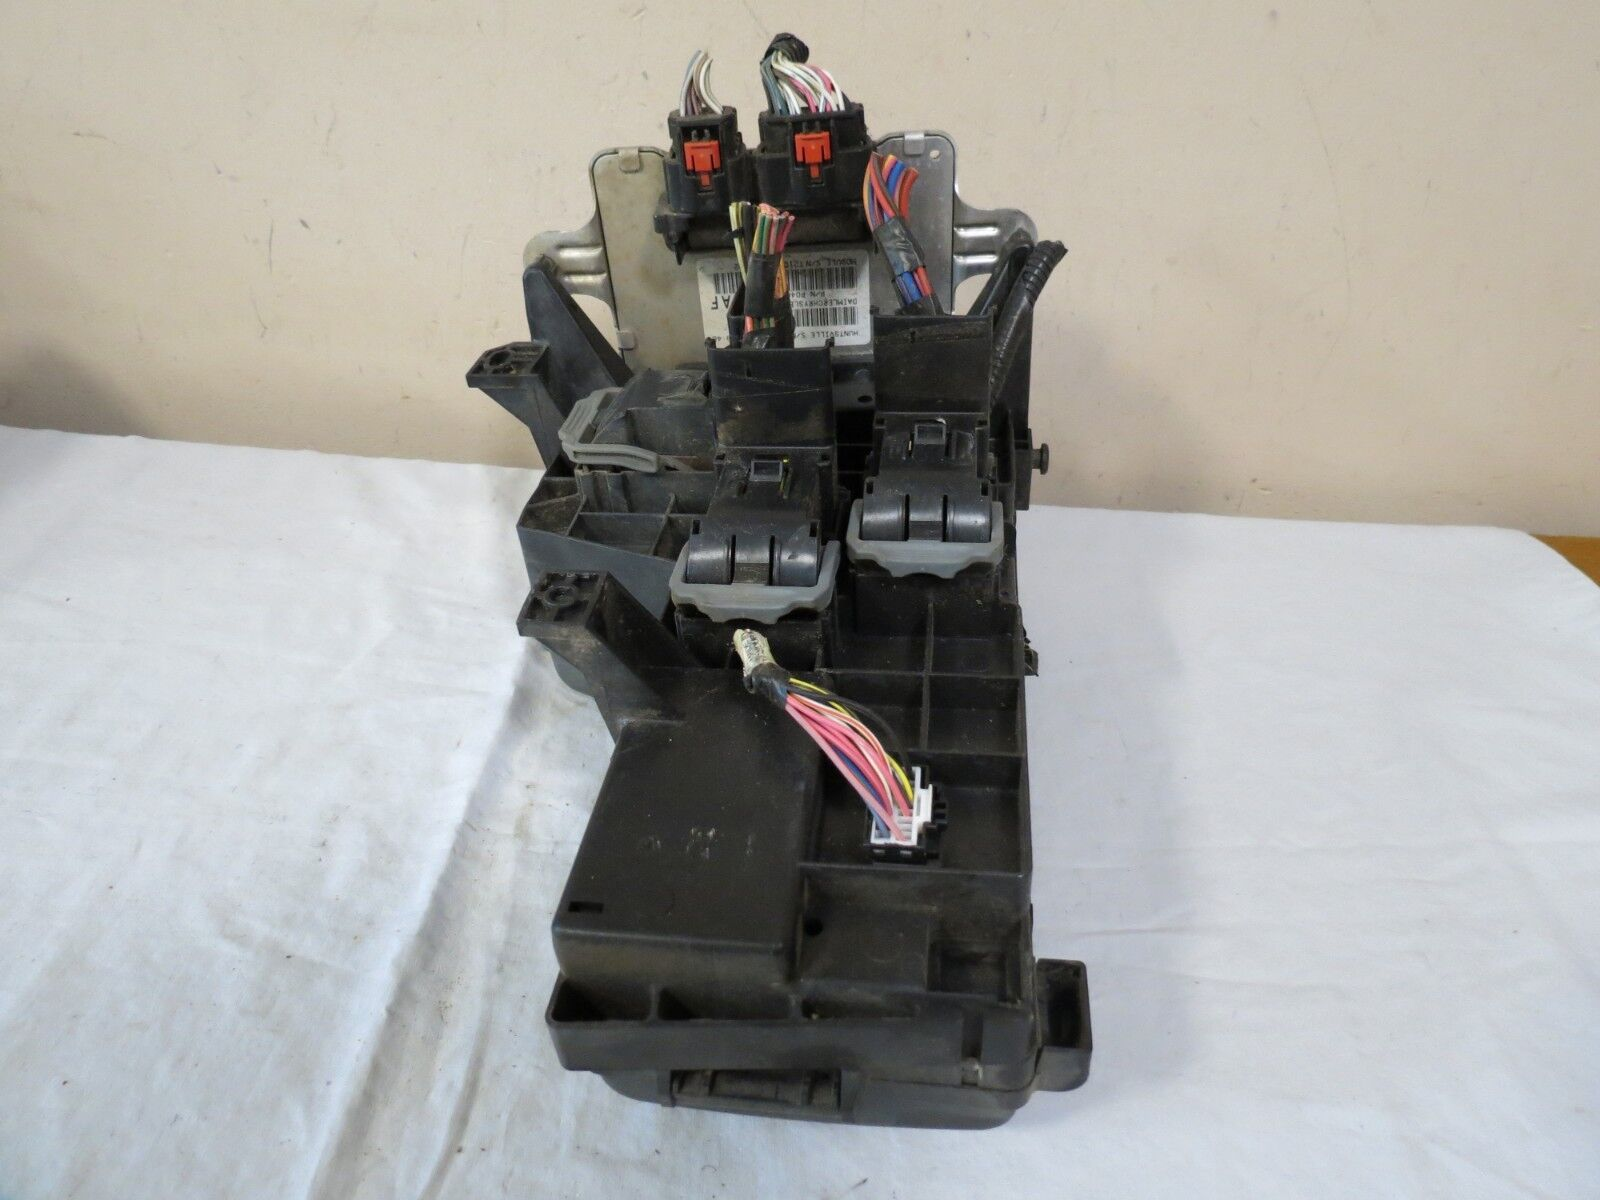 Used Dodge Raider Computers And Cruise Control Parts For Sale 2007 Dakota Fuse Box Location Ranger Power Integrated Module Unit